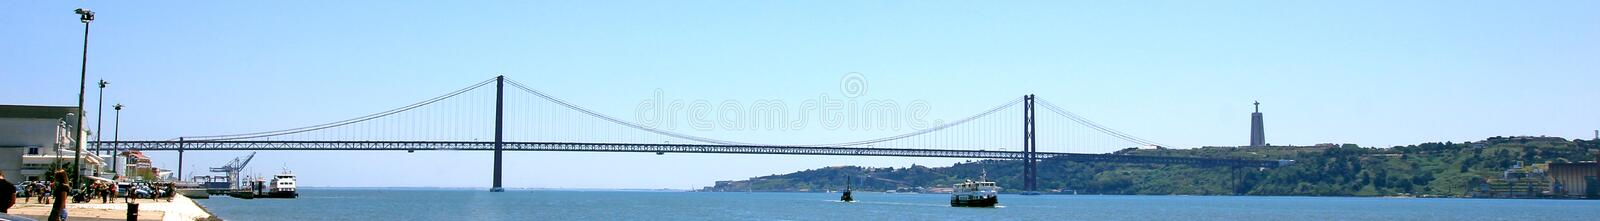 25 of april bridge ponte 25 de abril over the river tejo, seen from belem, lisbon, portugal. On a sunny day royalty free stock image